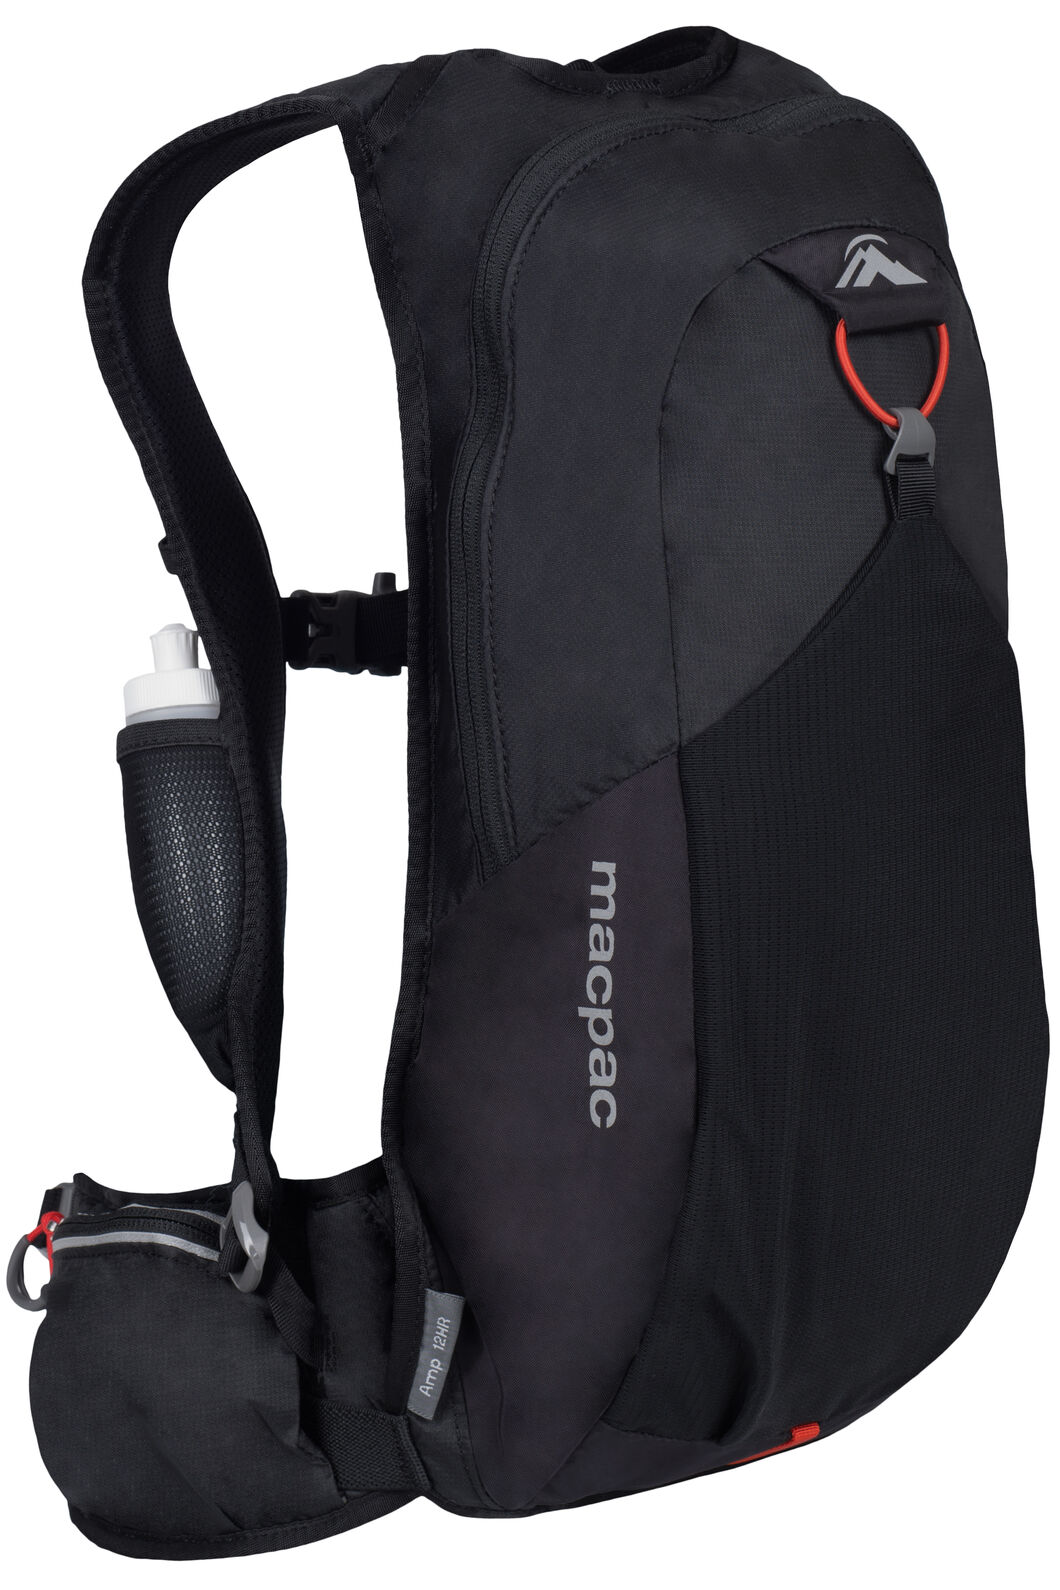 Macpac Amp 12Hr 7L Running Pack, Black, hi-res